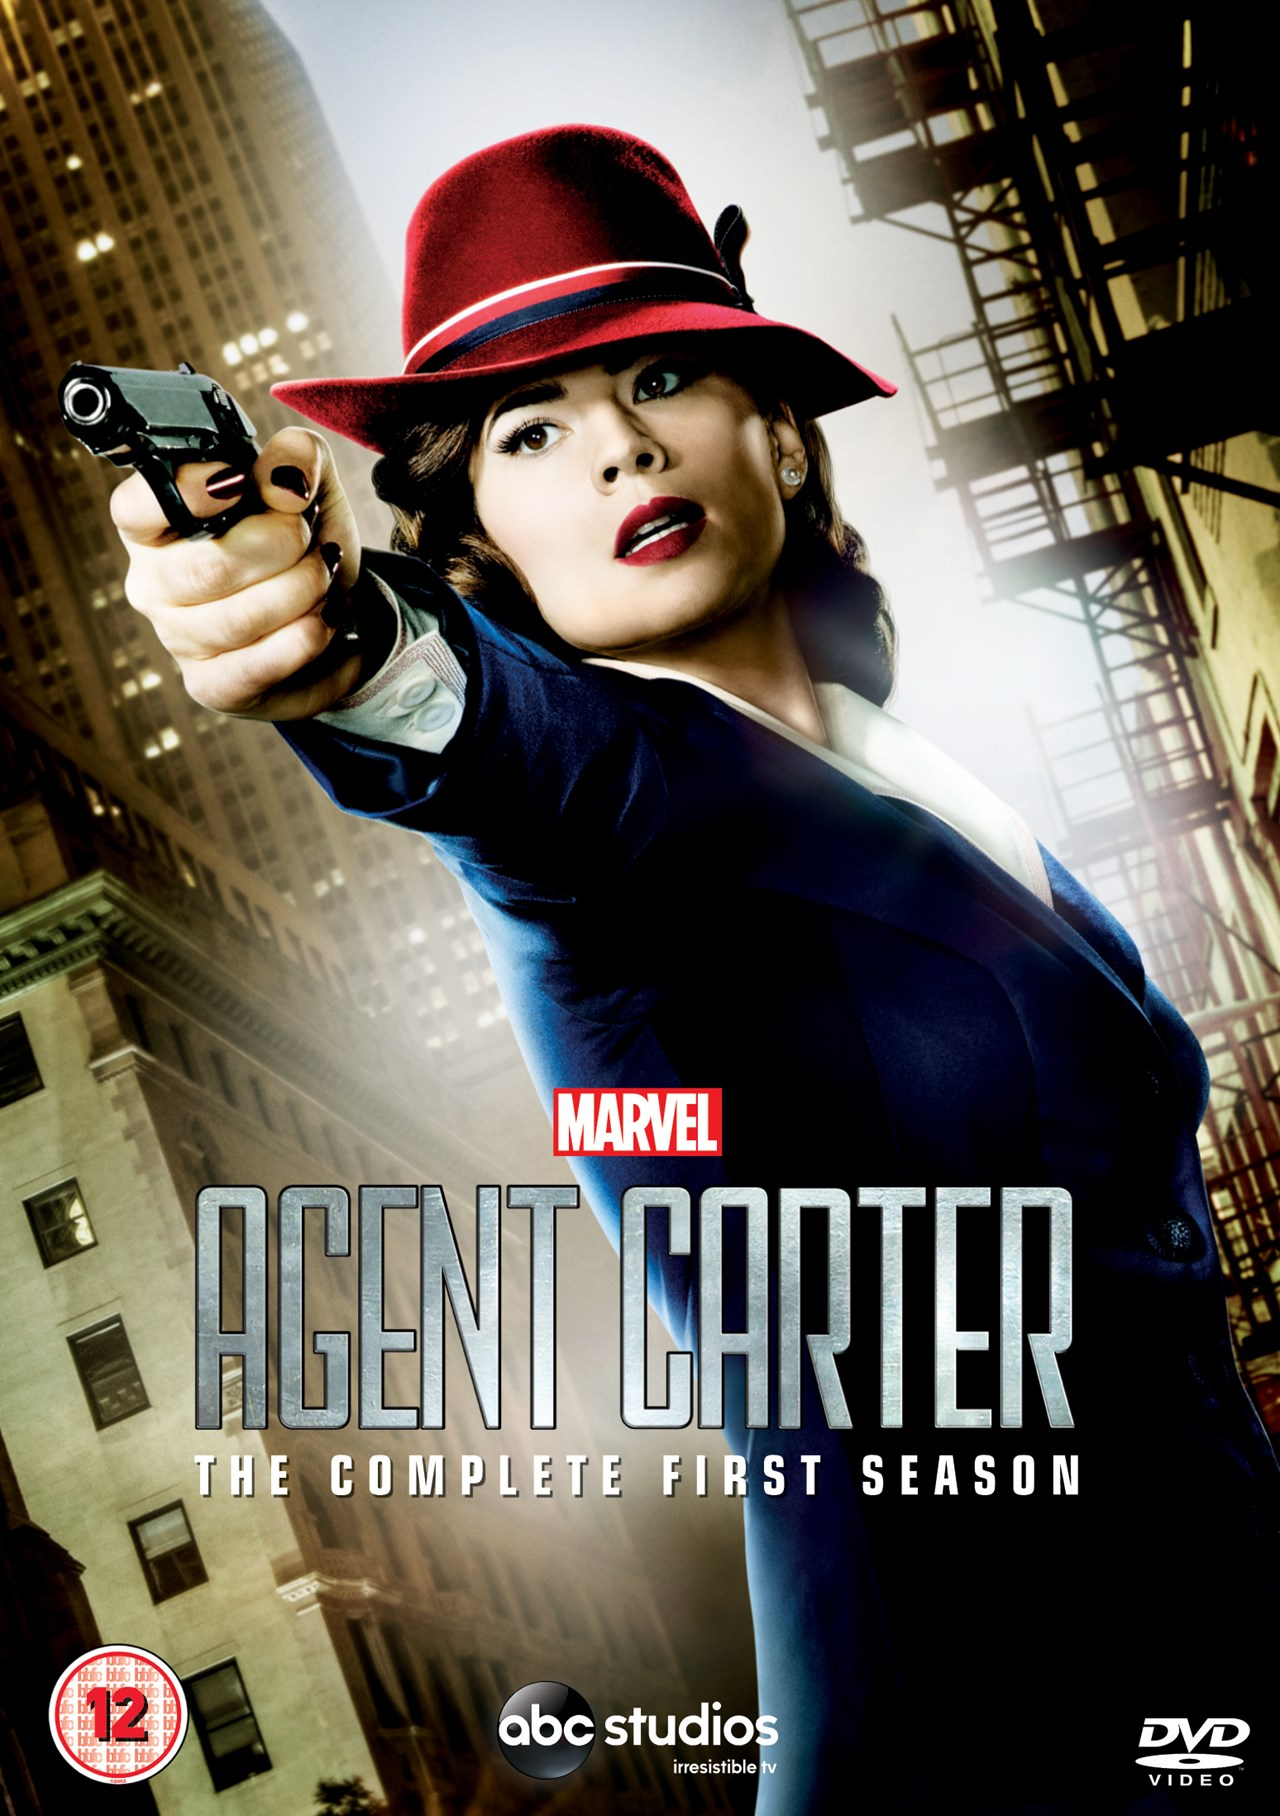 Marvel's Agent Carter: The Complete First Season - 1